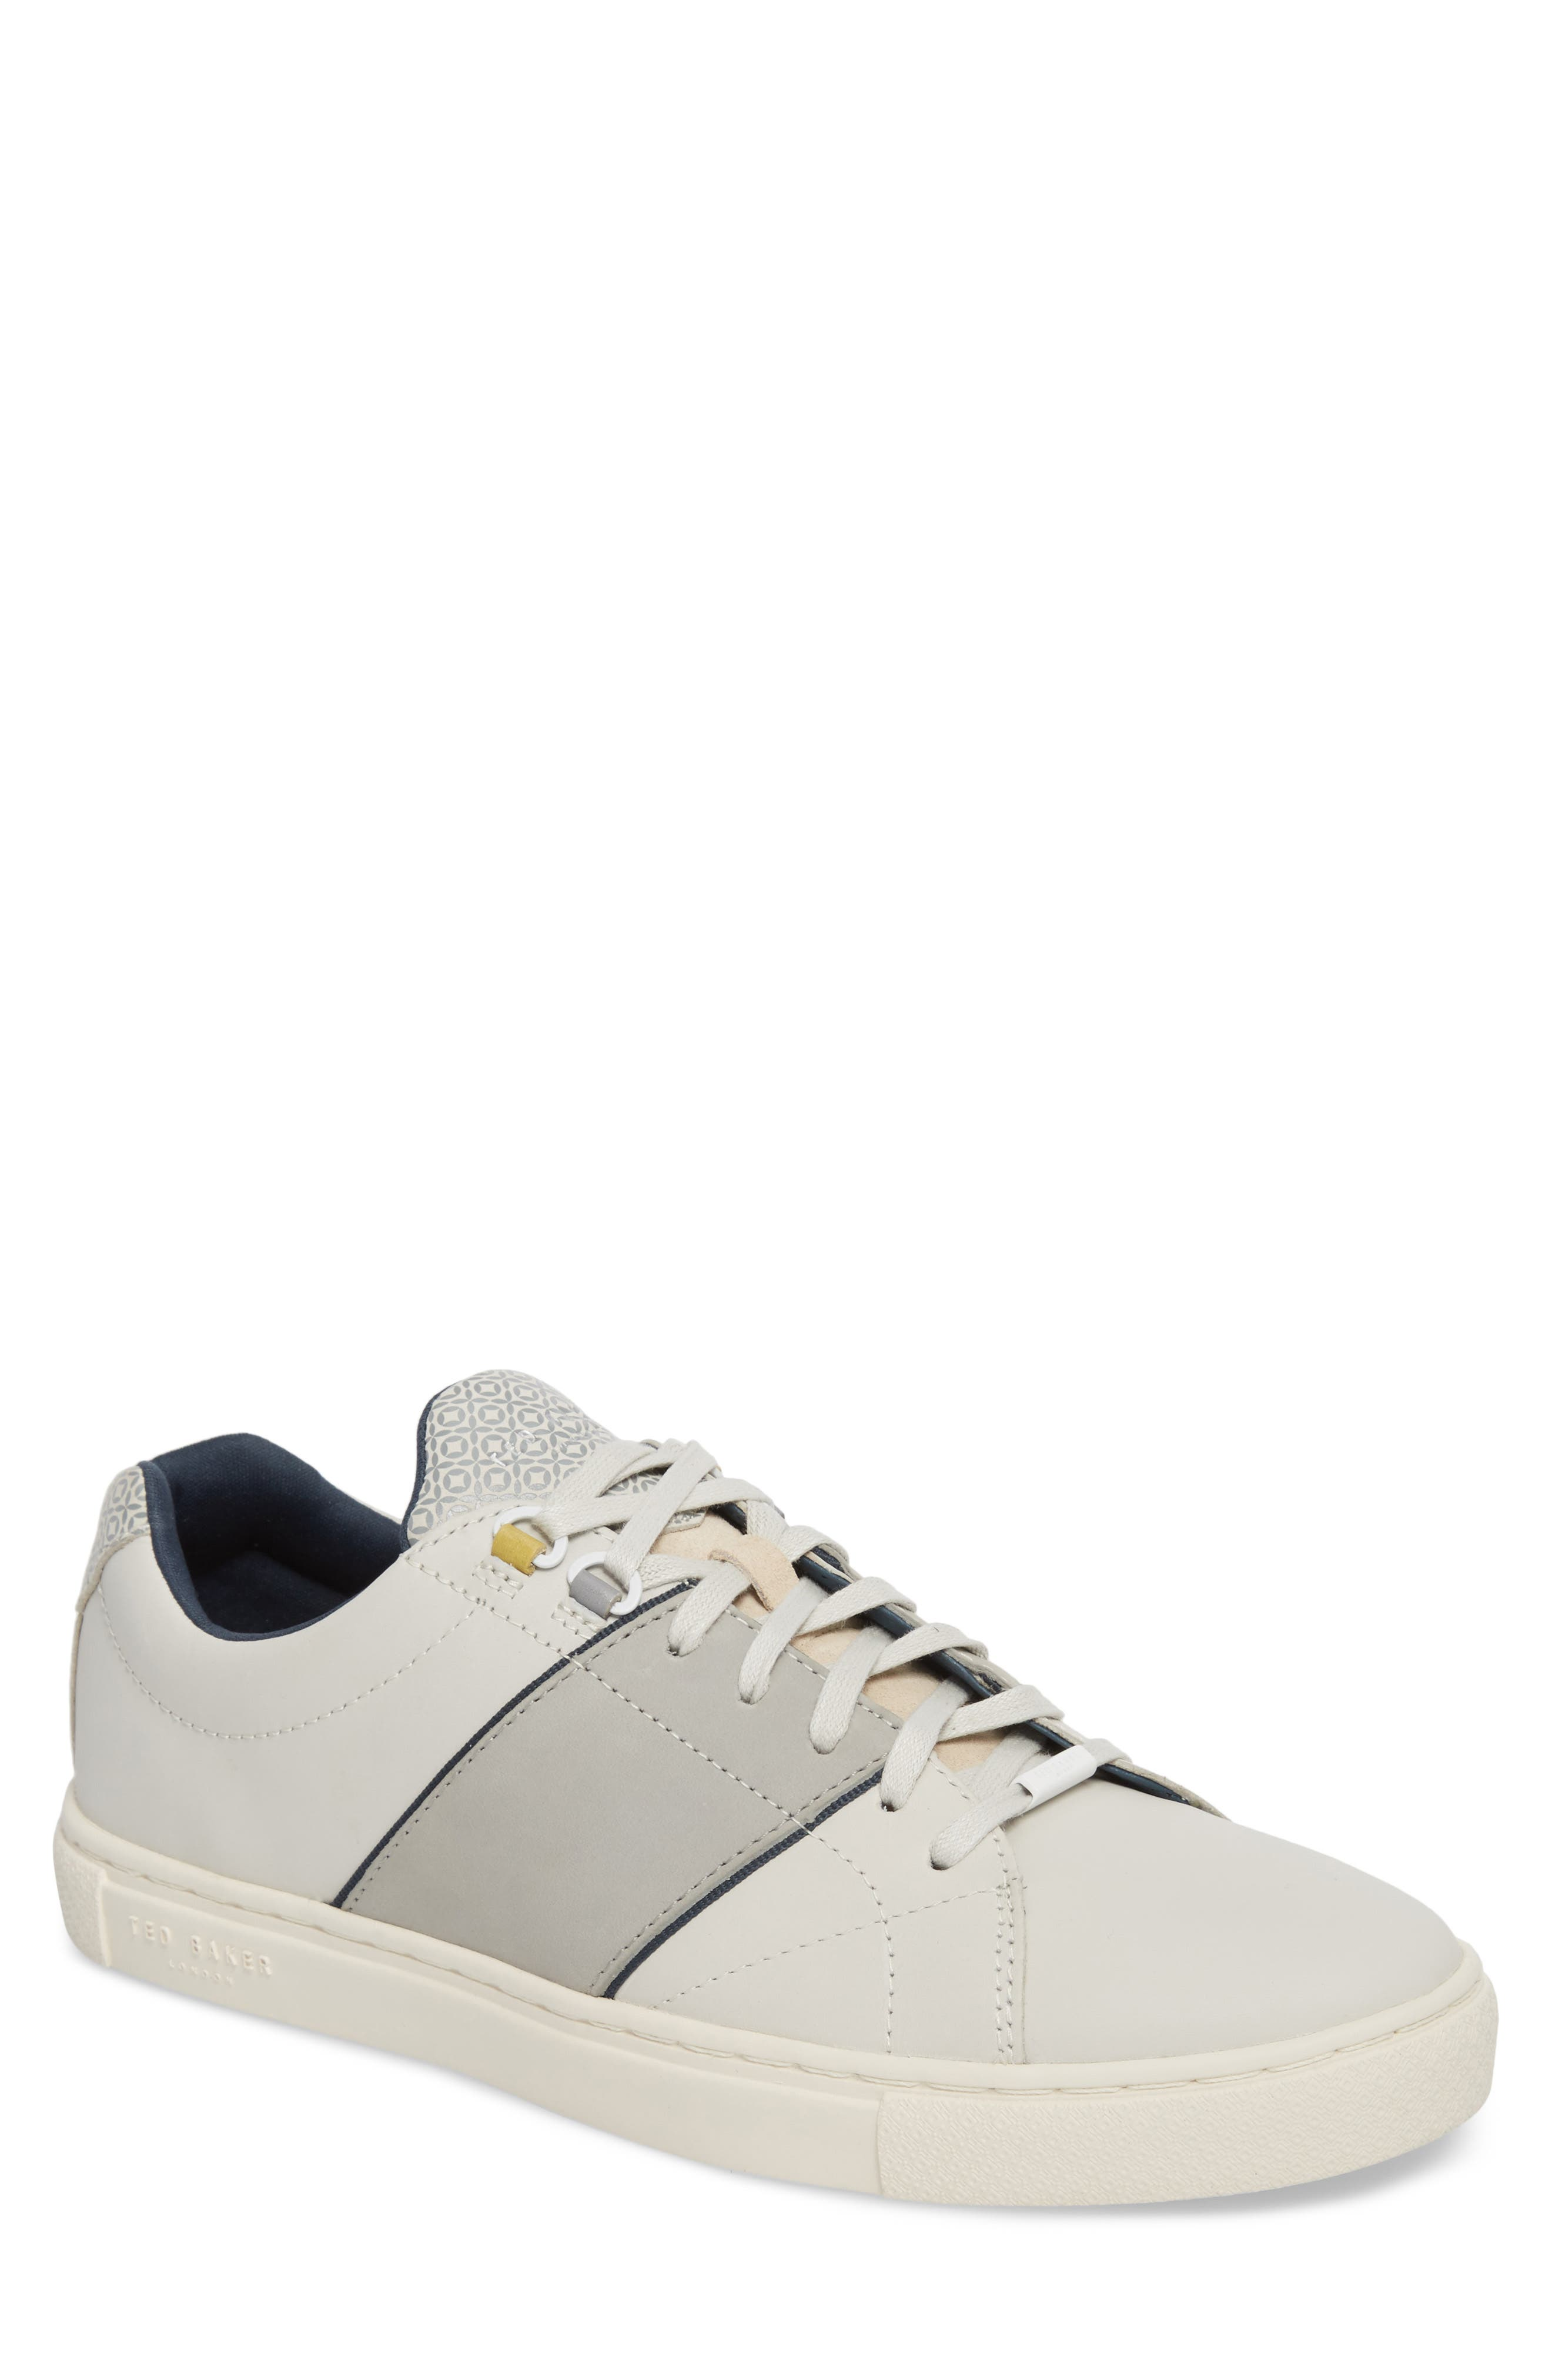 Ted Baker Quana Low Top Sneaker,                         Main,                         color, 152